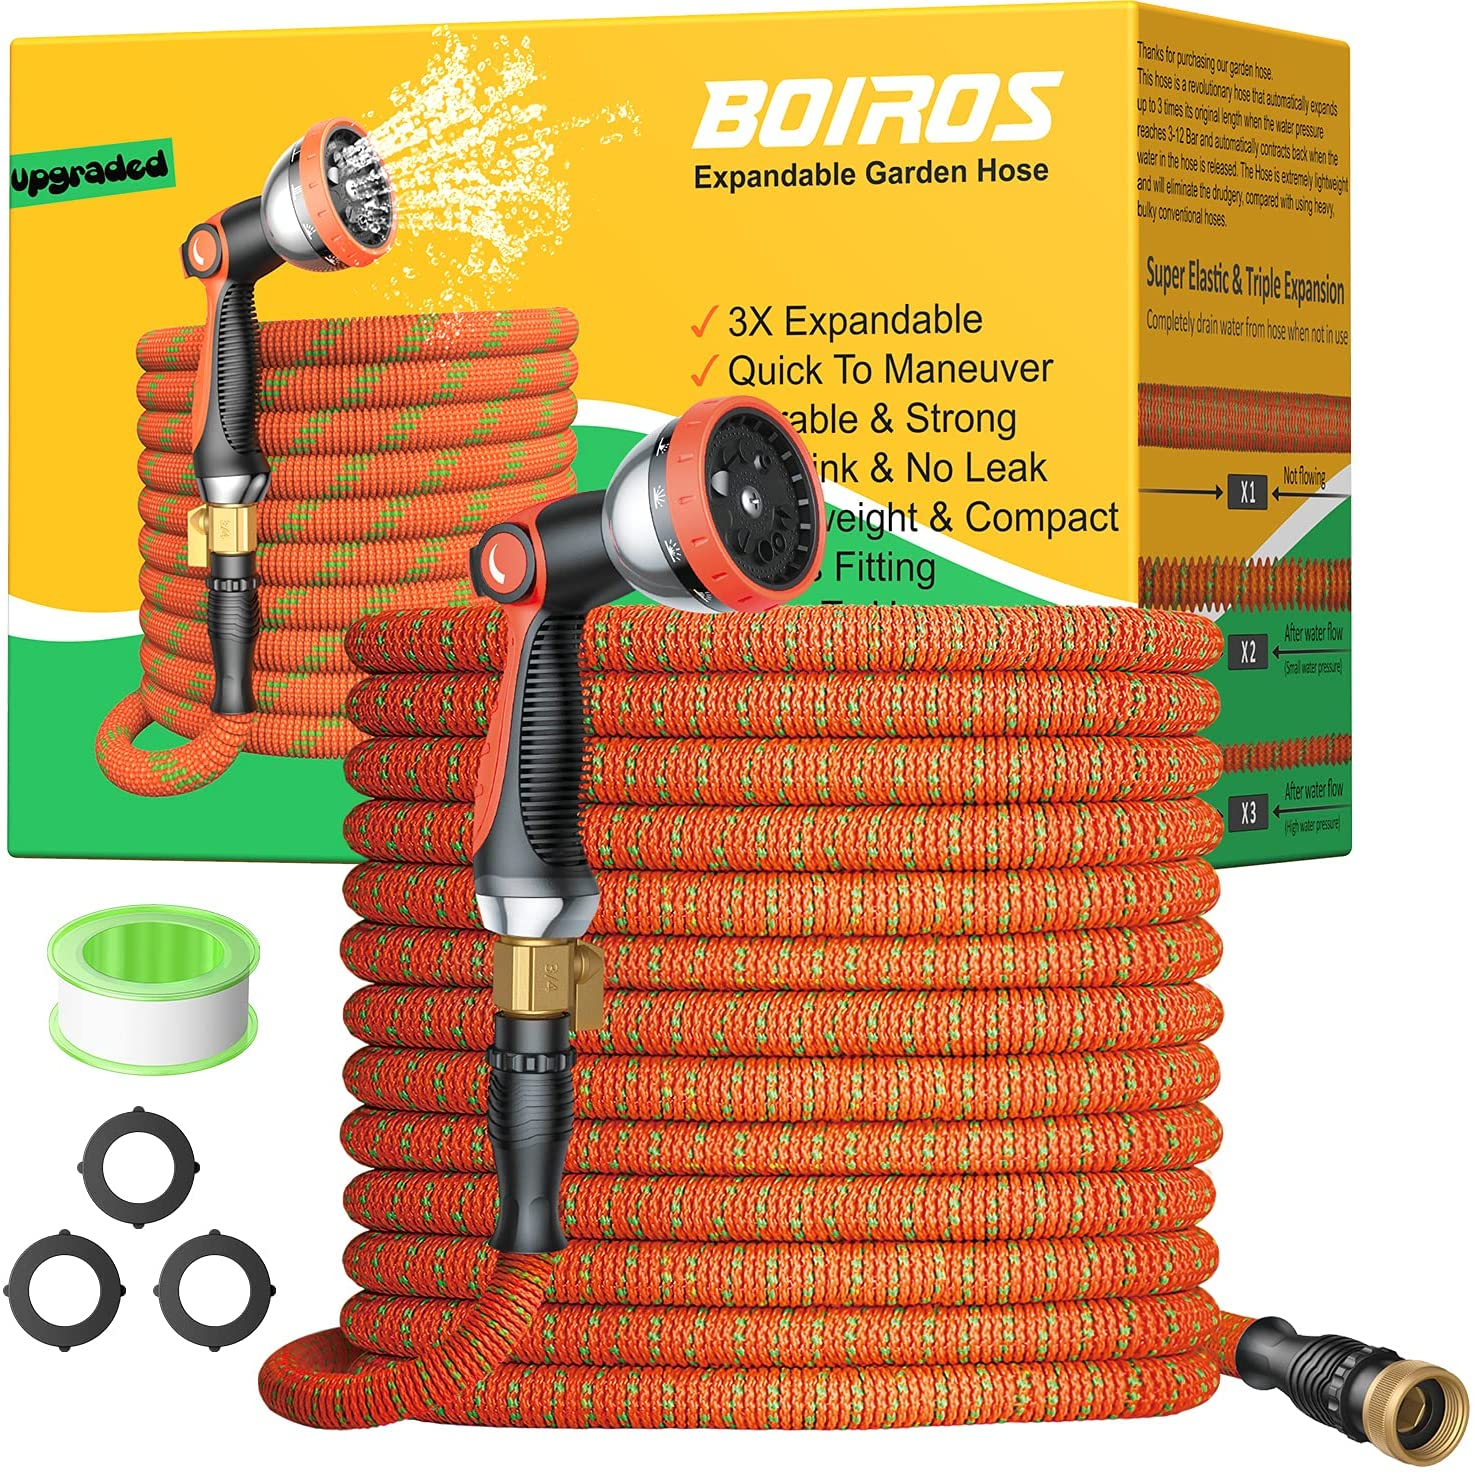 BOIROS price Garden Hose 100ft Expandable wit Water and Flexible Industry No. 1